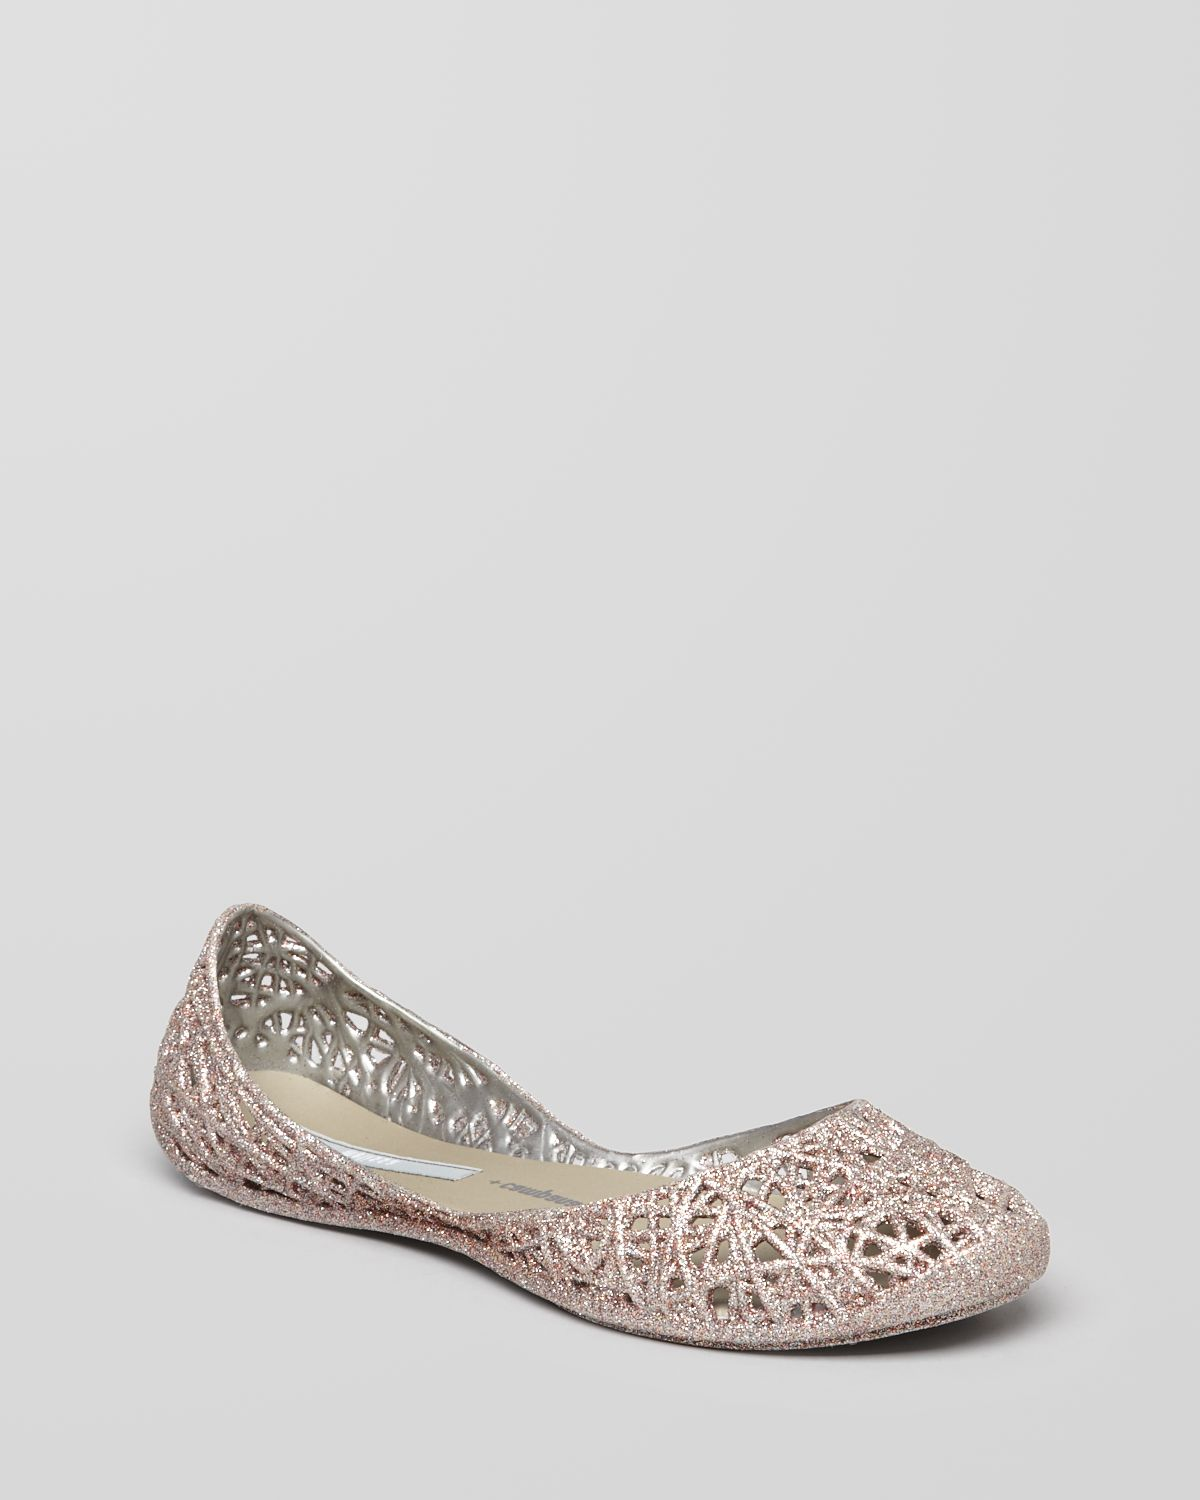 Silver Flat Jelly Shoes